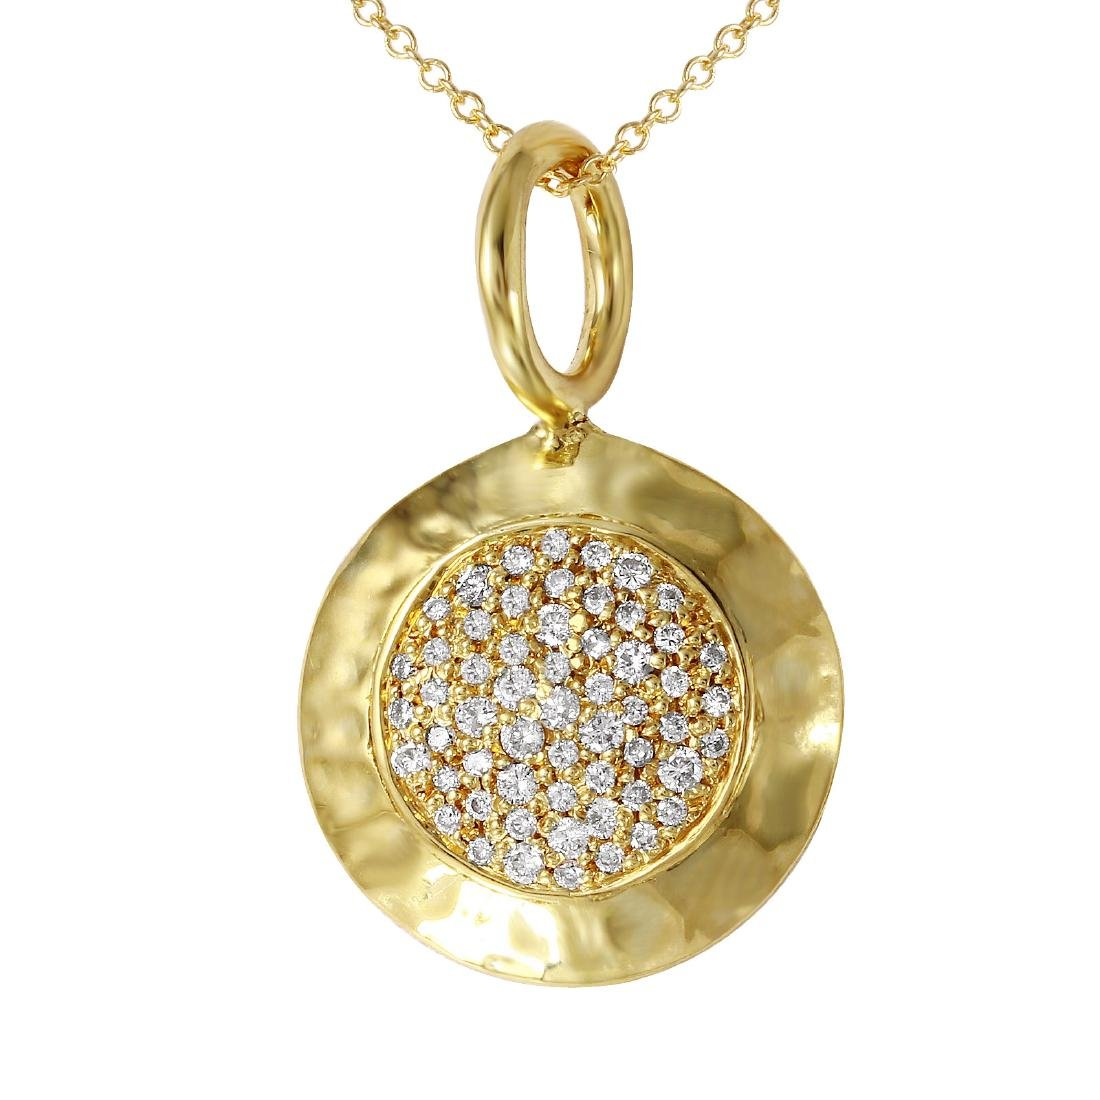 Ippolita 18KT Yellow Gold Diamond Necklace